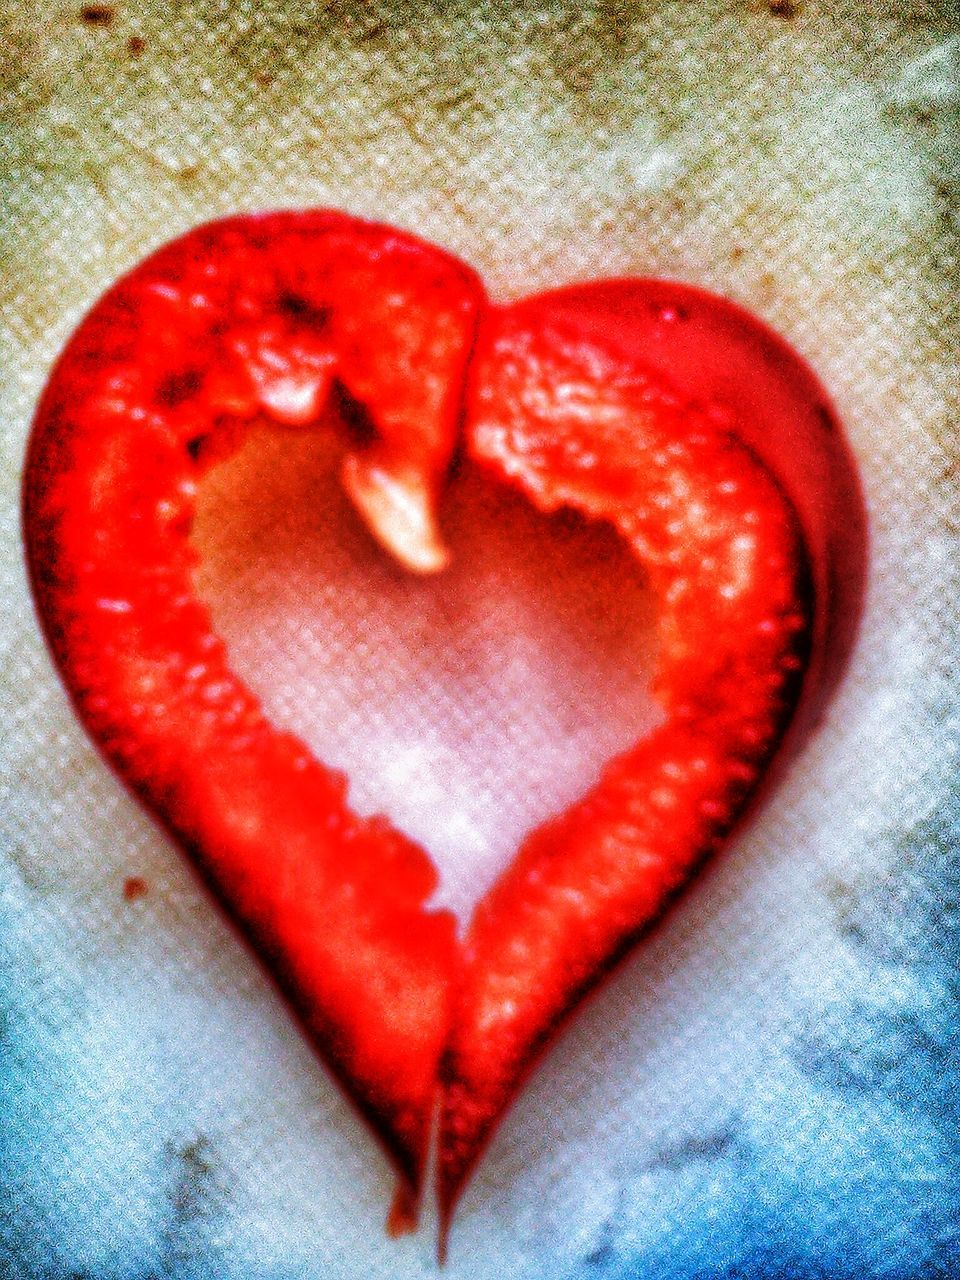 heart shape, red, love, still life, food and drink, no people, food, indoors, close-up, textured, freshness, day, ready-to-eat